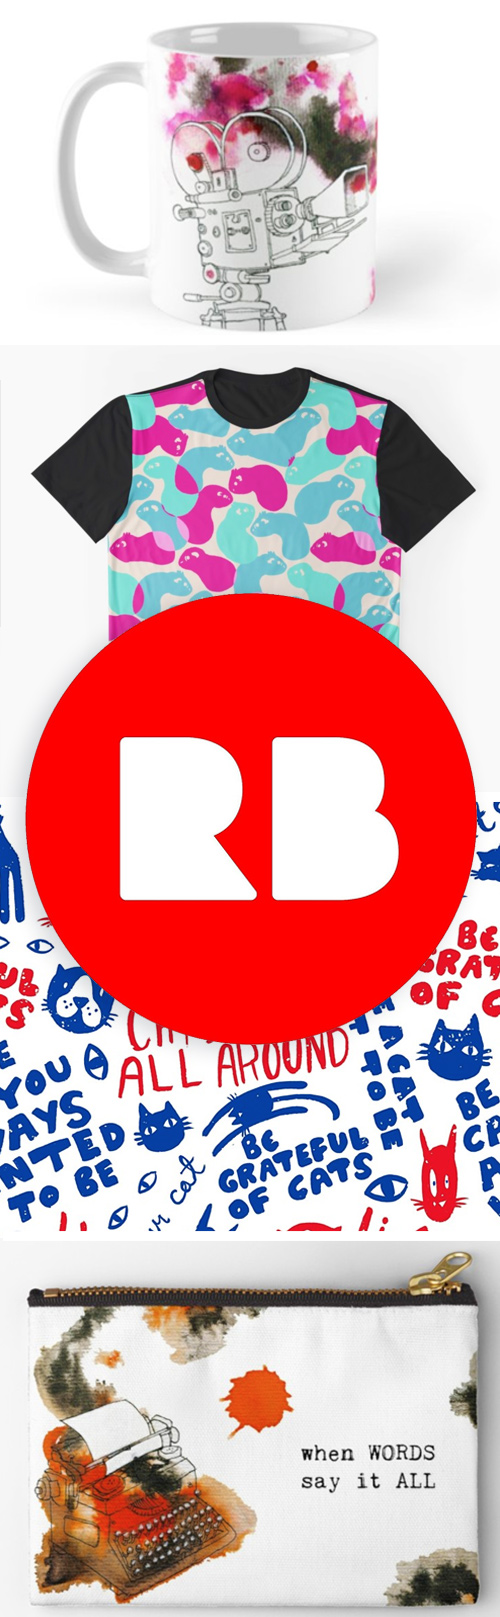 Redbubble Elli Maanpaa Shop - Cool prints and patterns for sale!